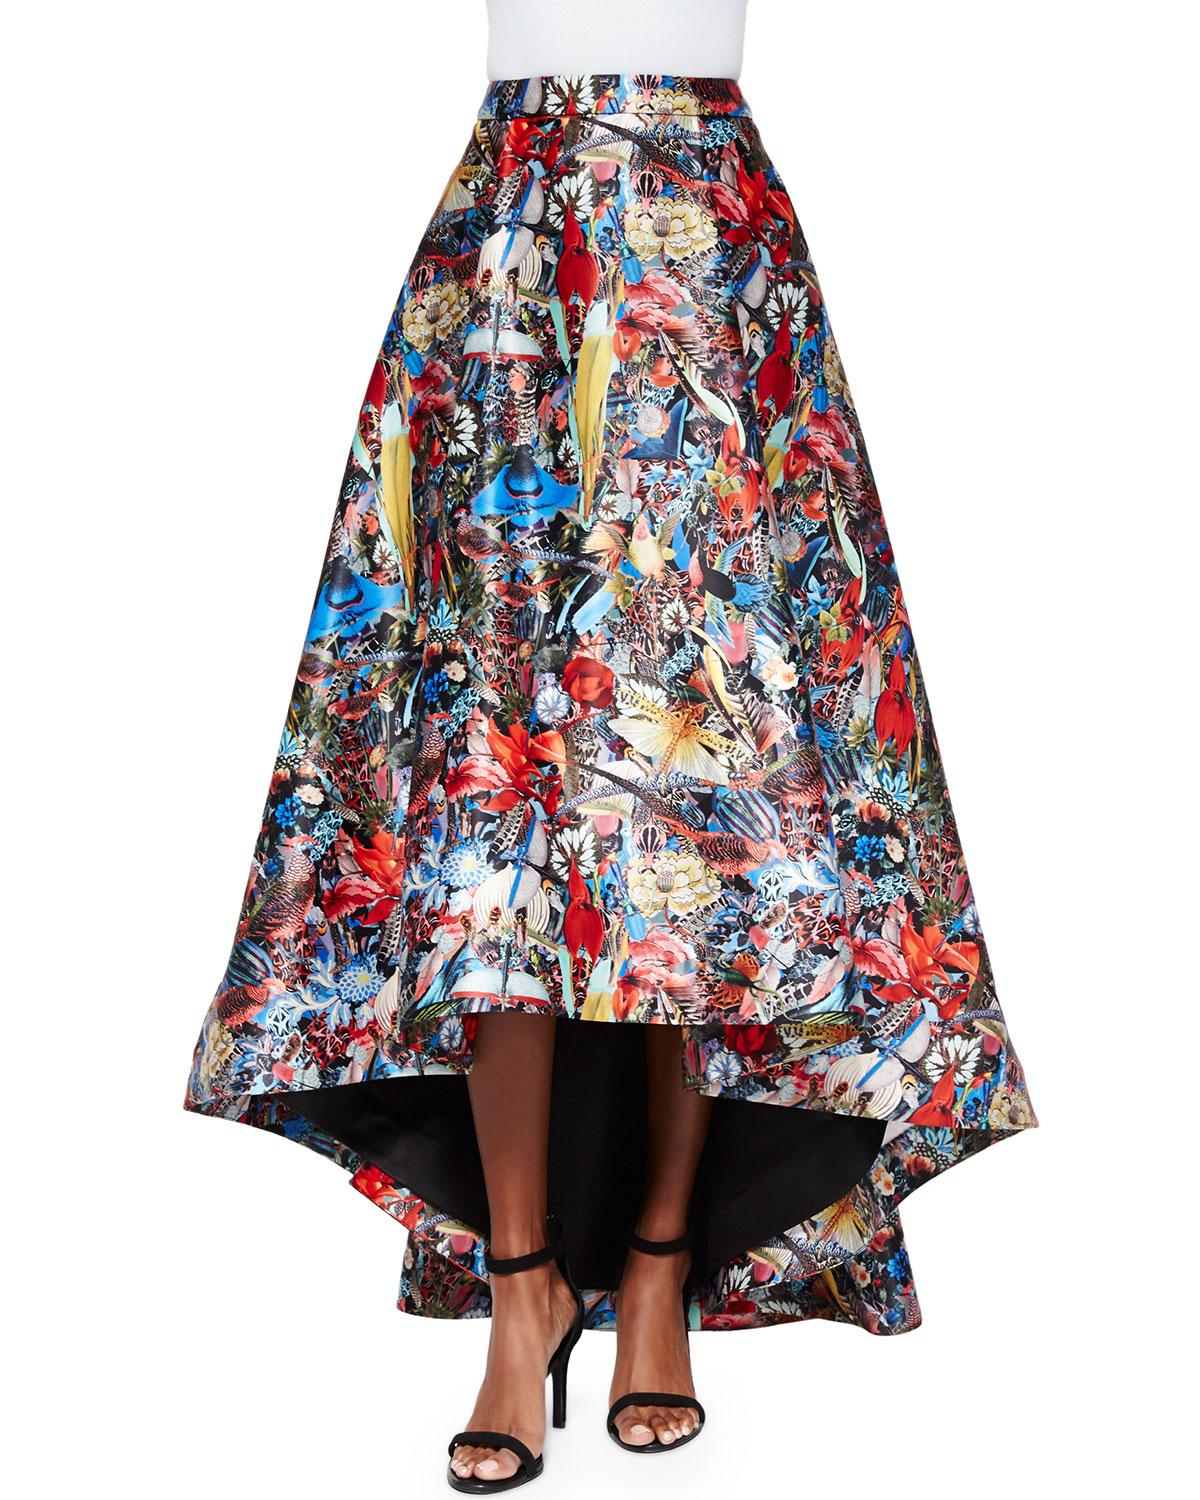 Long high-low skirts tend to be somewhat more dramatic, with the front of the hemline being at the knees or higher and the fabric cascading all the way to the floor in the back. This transition is much more gradual on shorter skirts.